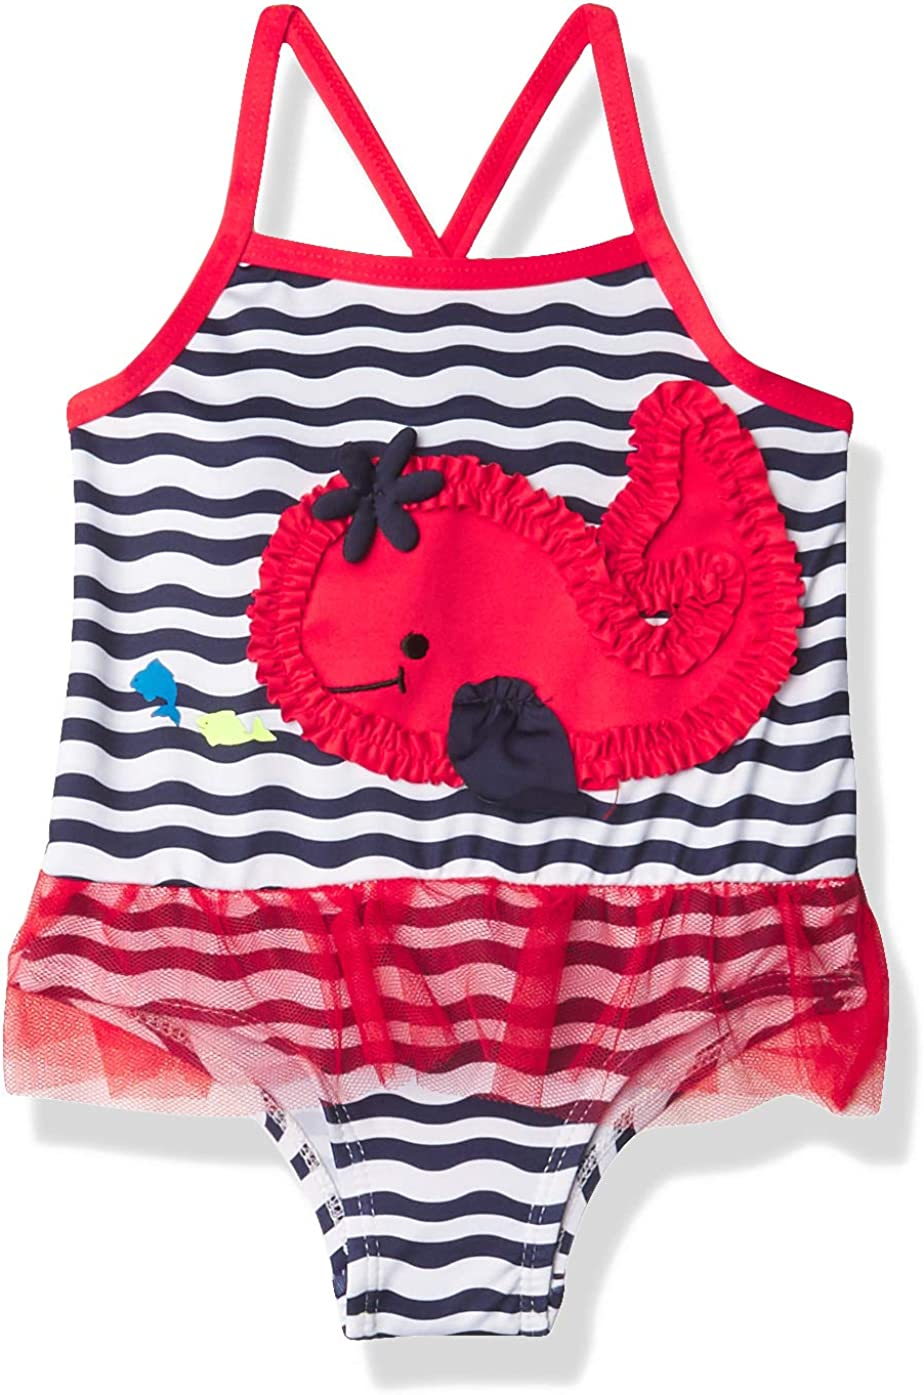 Wippette Girls Baby Whale Print One Piece Swimsuit with Mesh